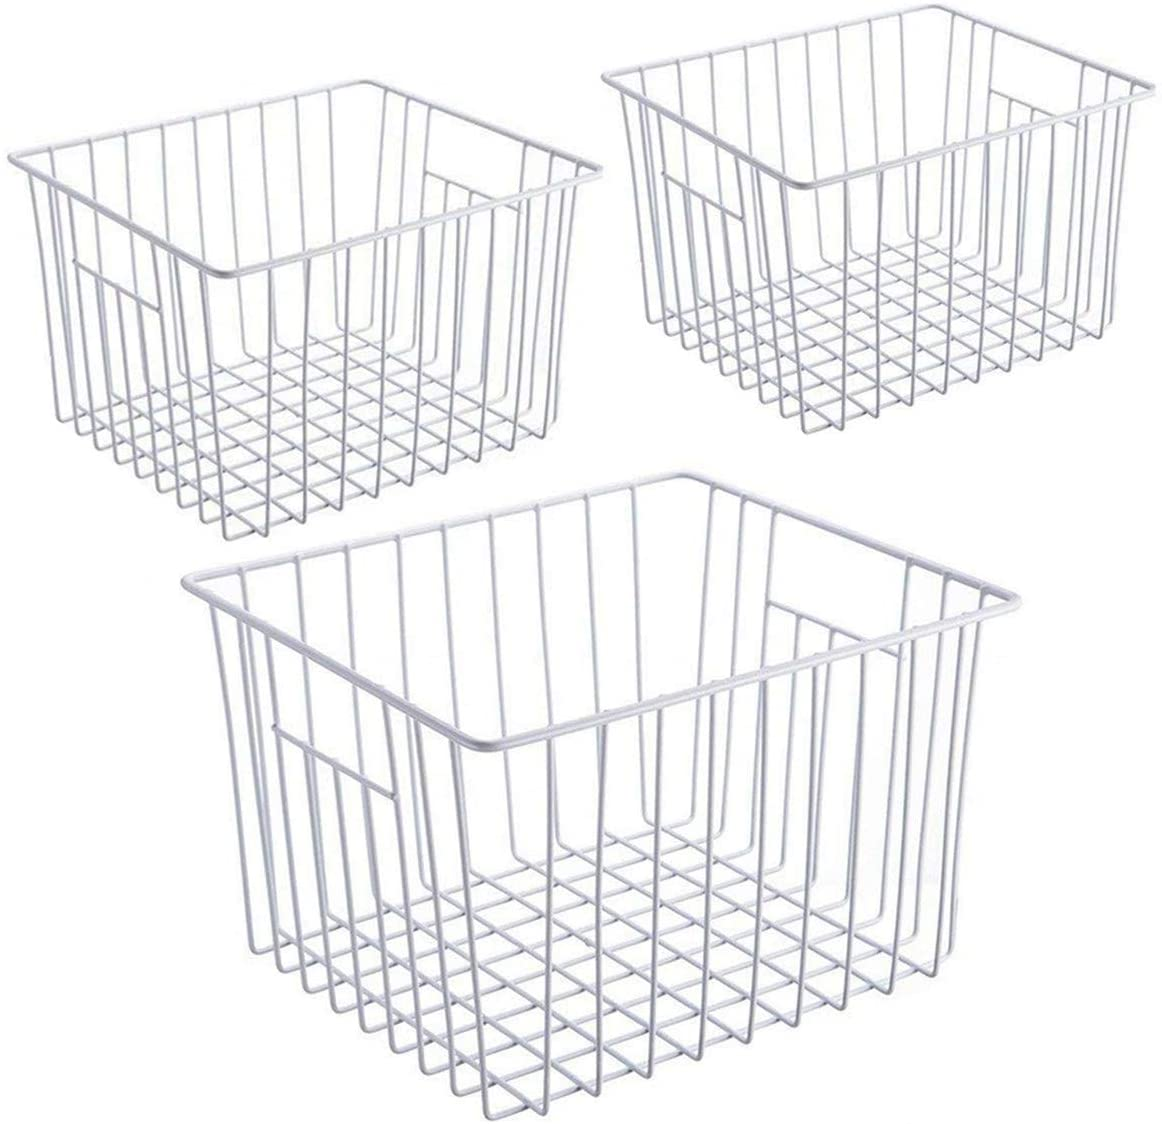 iPEGTOP Deep Refrigerator Freezer Baskets, Large Household Wire Storage Basket Bins Organizer with Handles for Kitchen, Pantry, Freezer, Cabinet, Closets, Pearl White, Set of 3